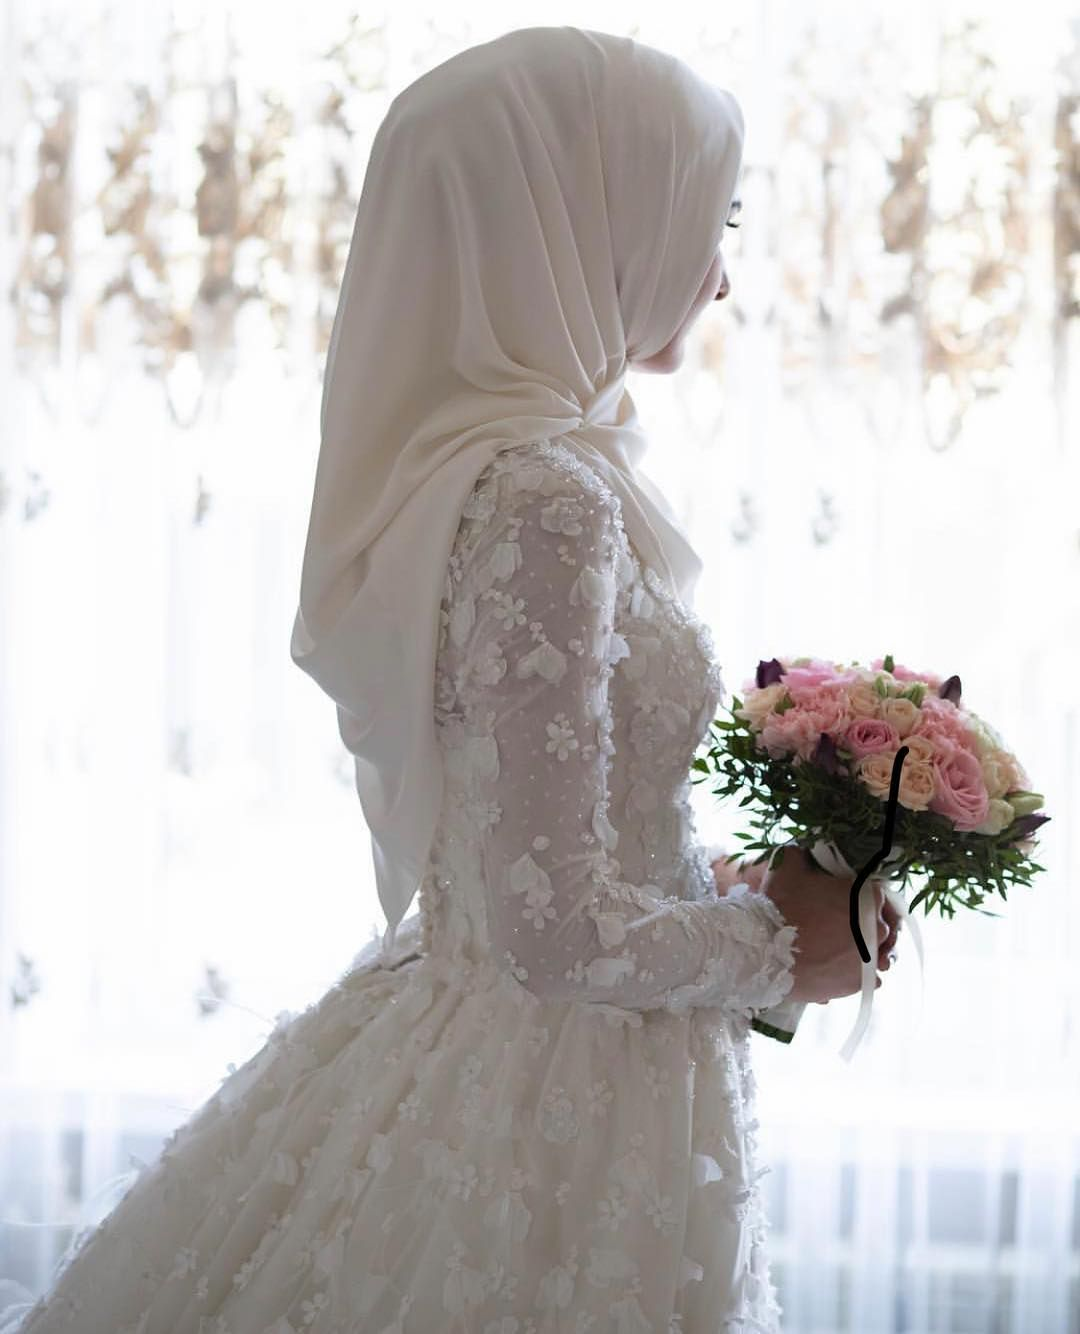 618 Curtidas 6 Comentarios Svadebnyj Salon Miledi Svadebniy Salon Milady No Instagram Moya Prekrasnaya Nevesta Fot Dresses Wedding Dresses Wedding Hijab